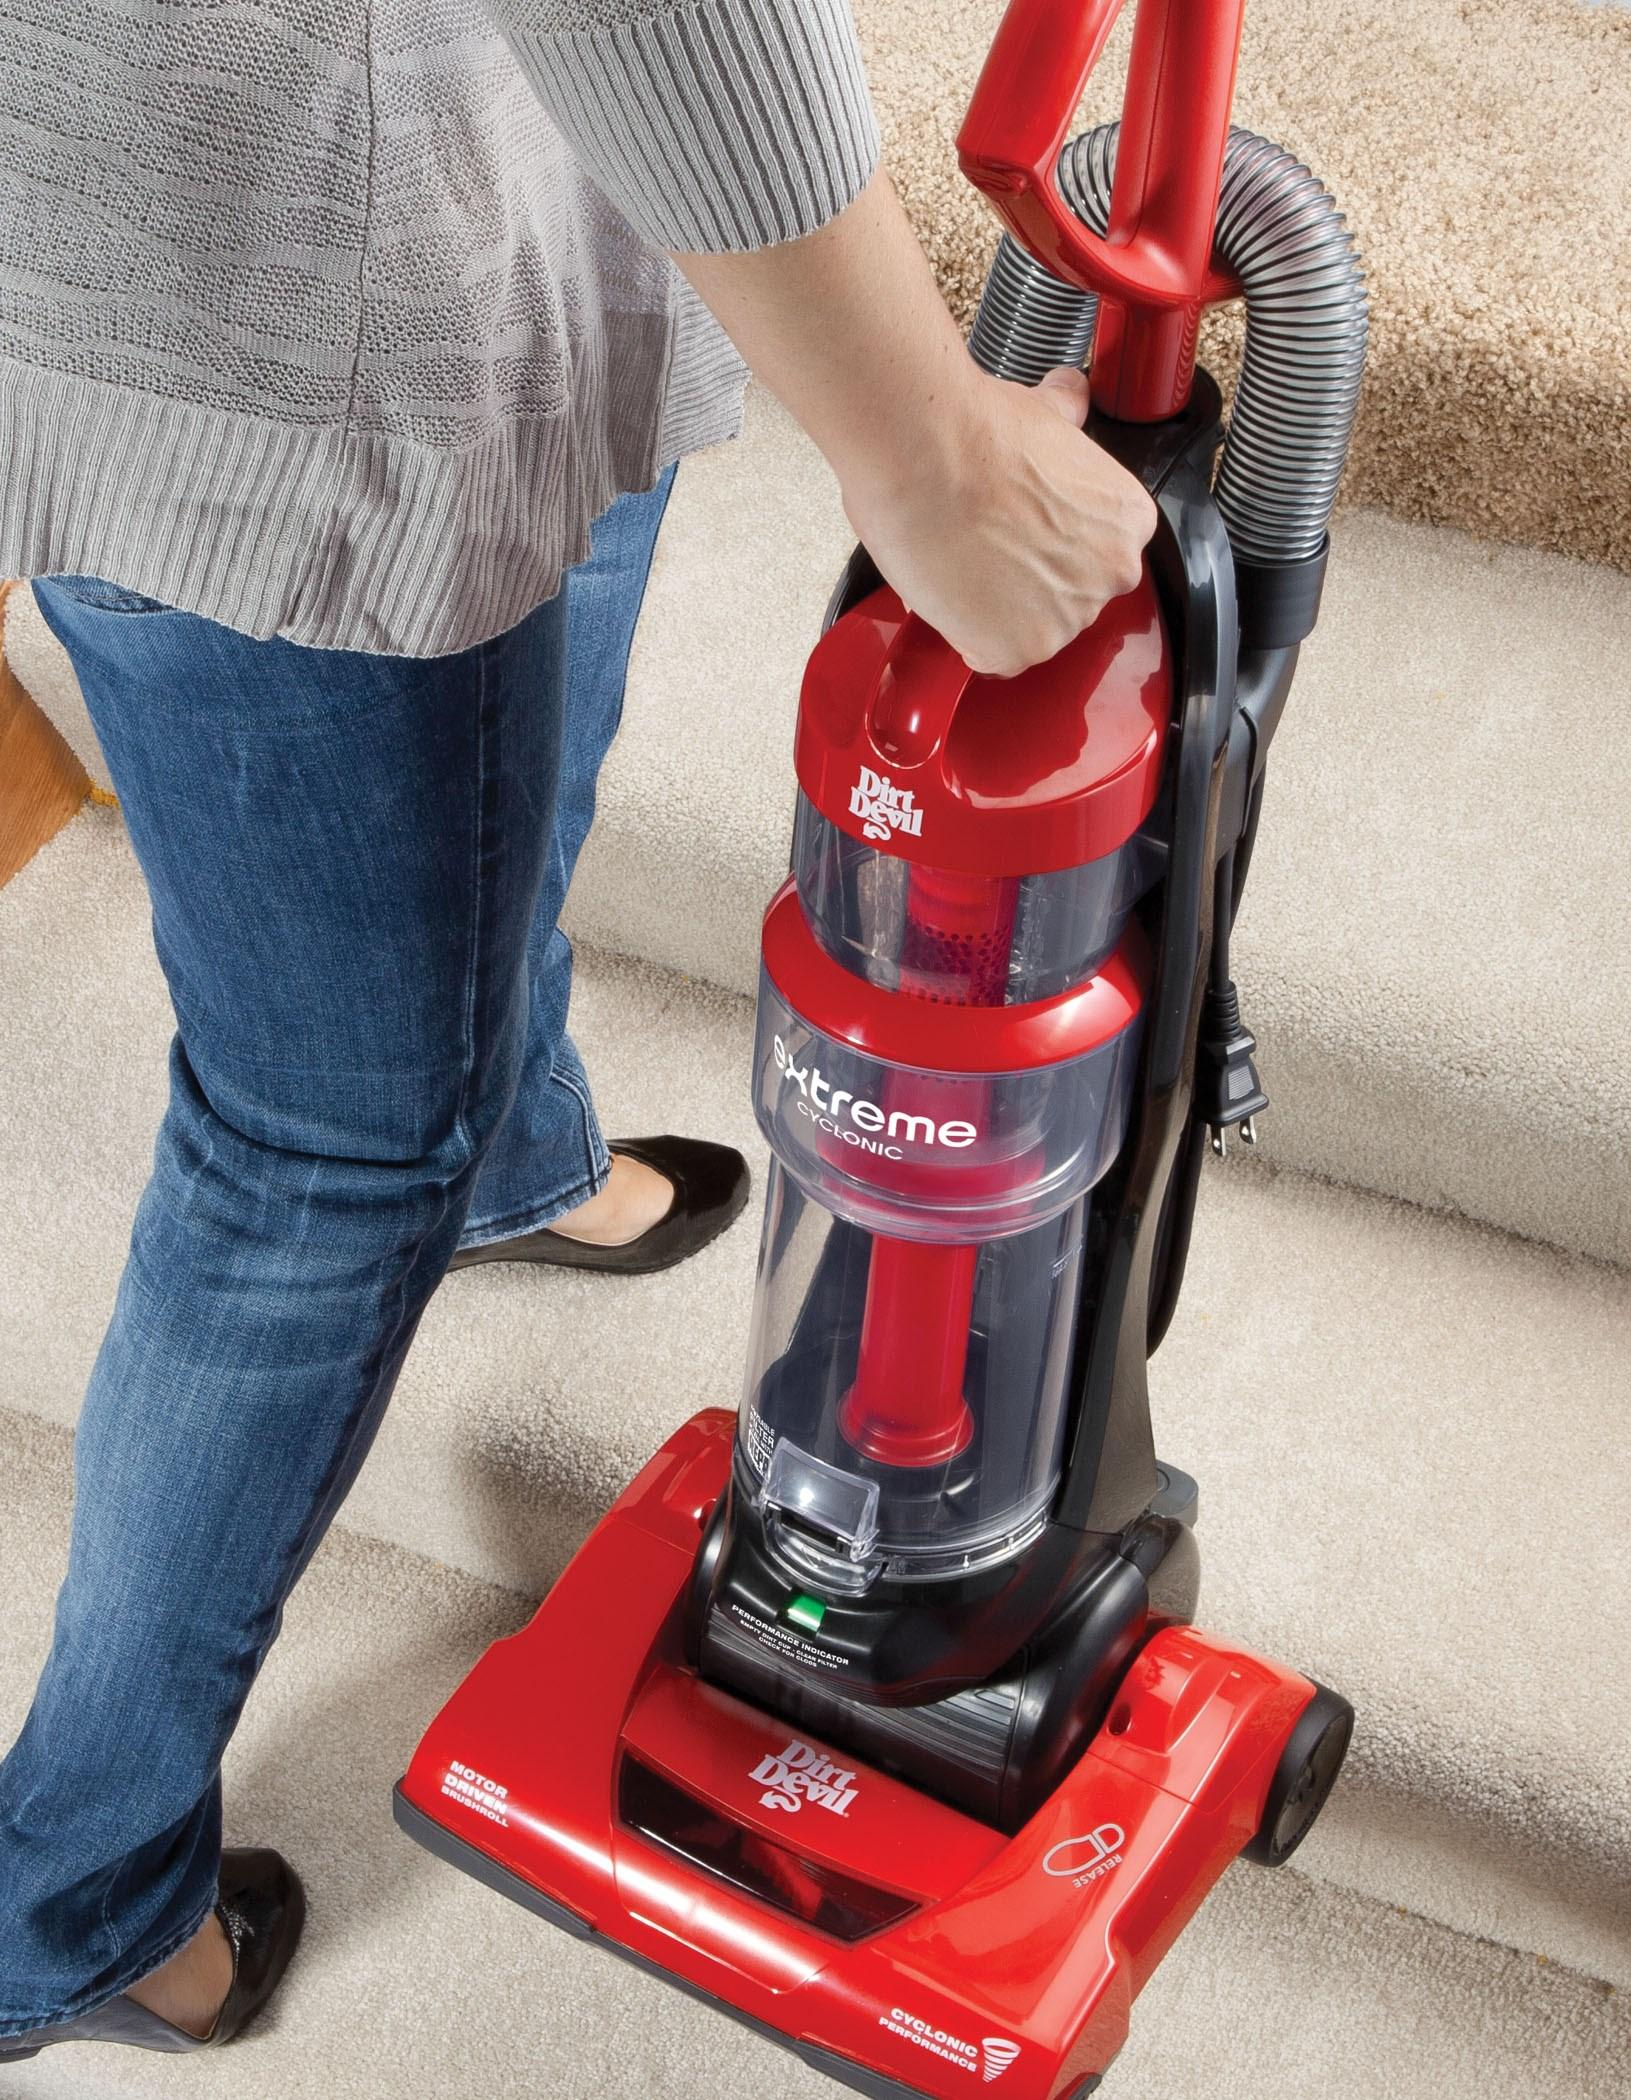 Dirt Devil Extreme Cyclonic Quick Vac Bagless Upright Vacuum